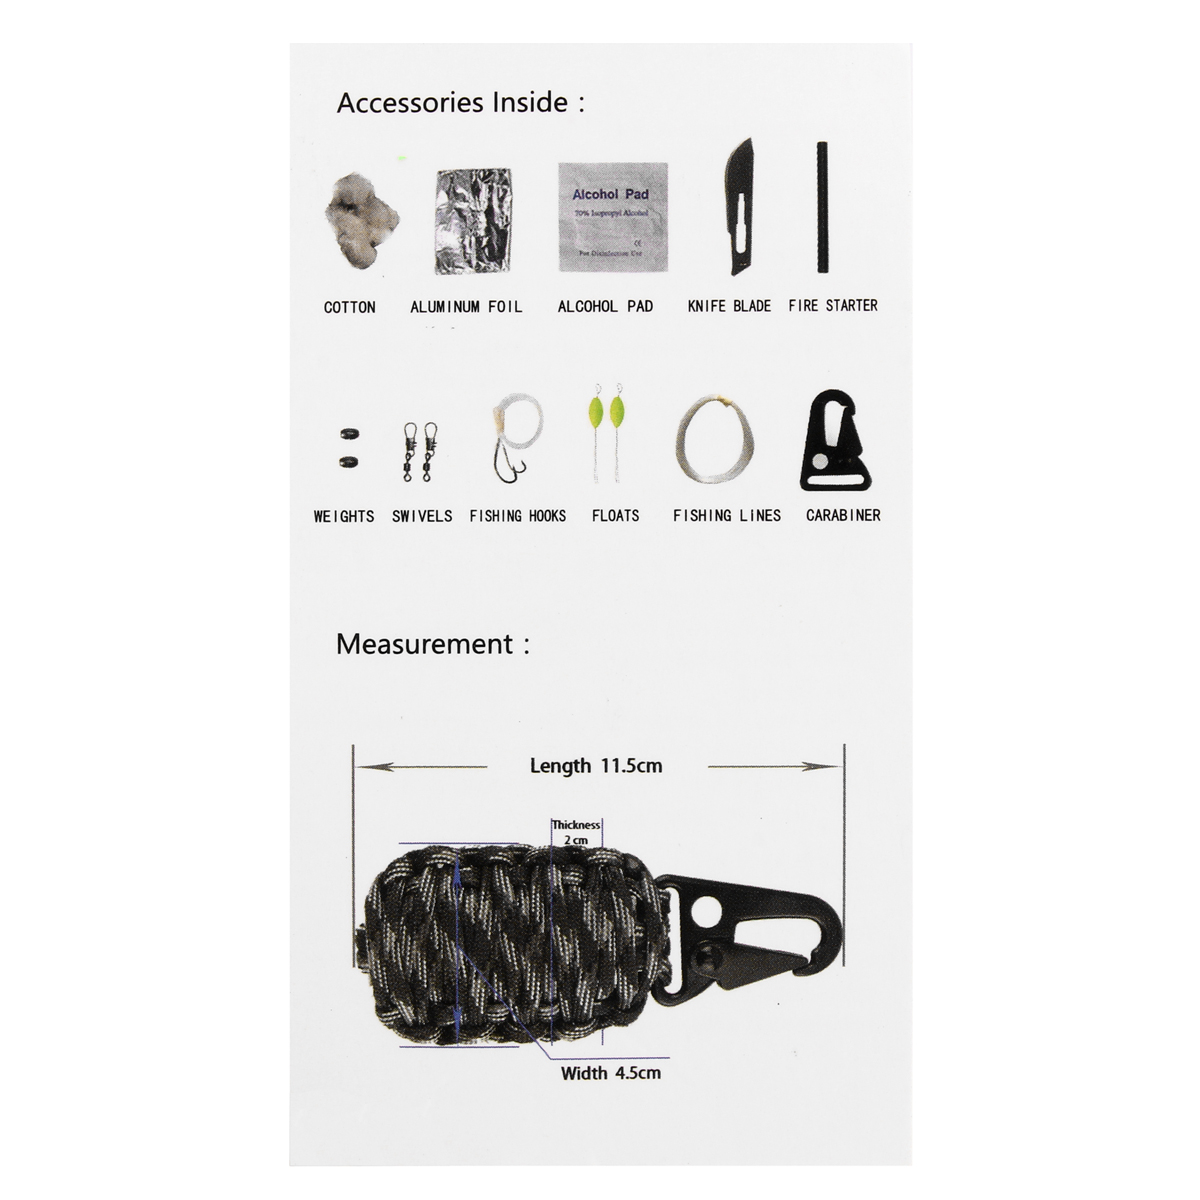 Benryhome 16pcs Outdoor Paracord Kit Survival Rope